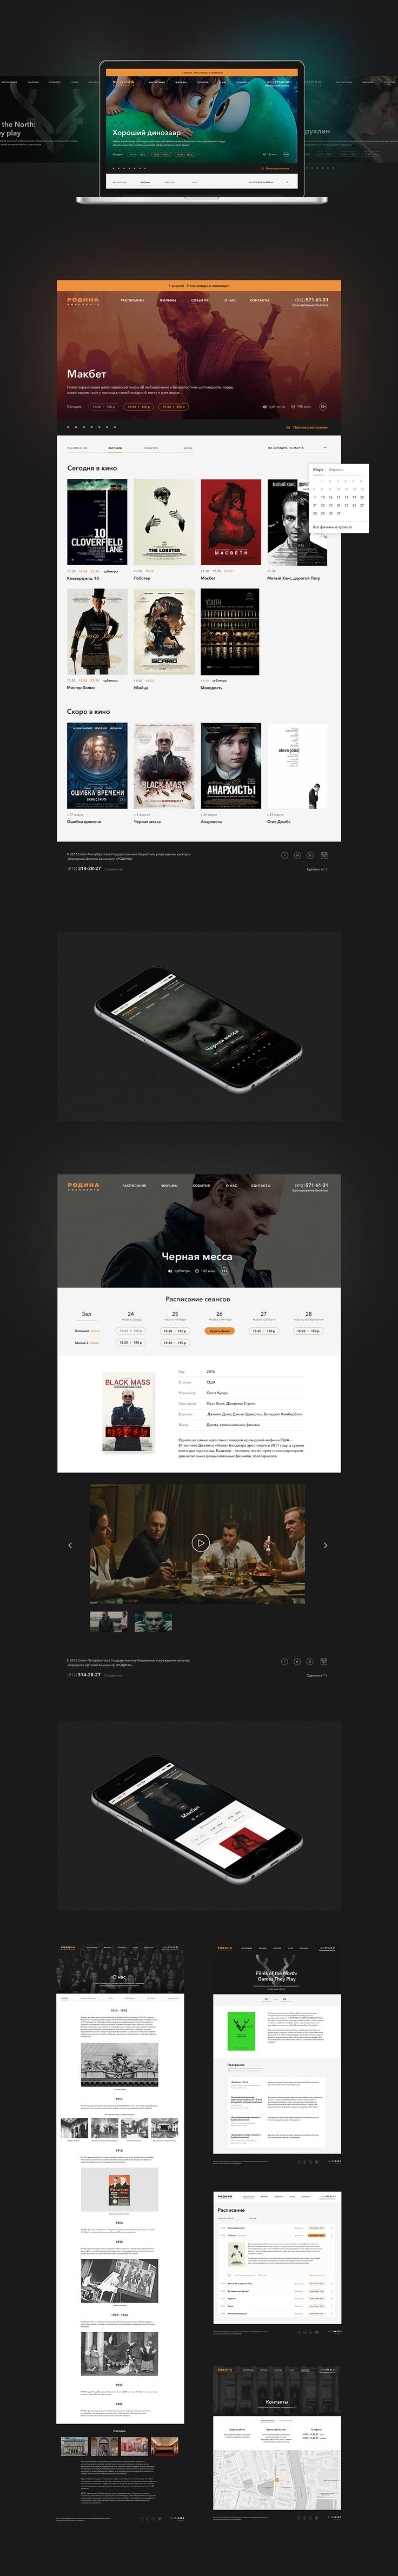 Rodina Cinema on Web Design Served